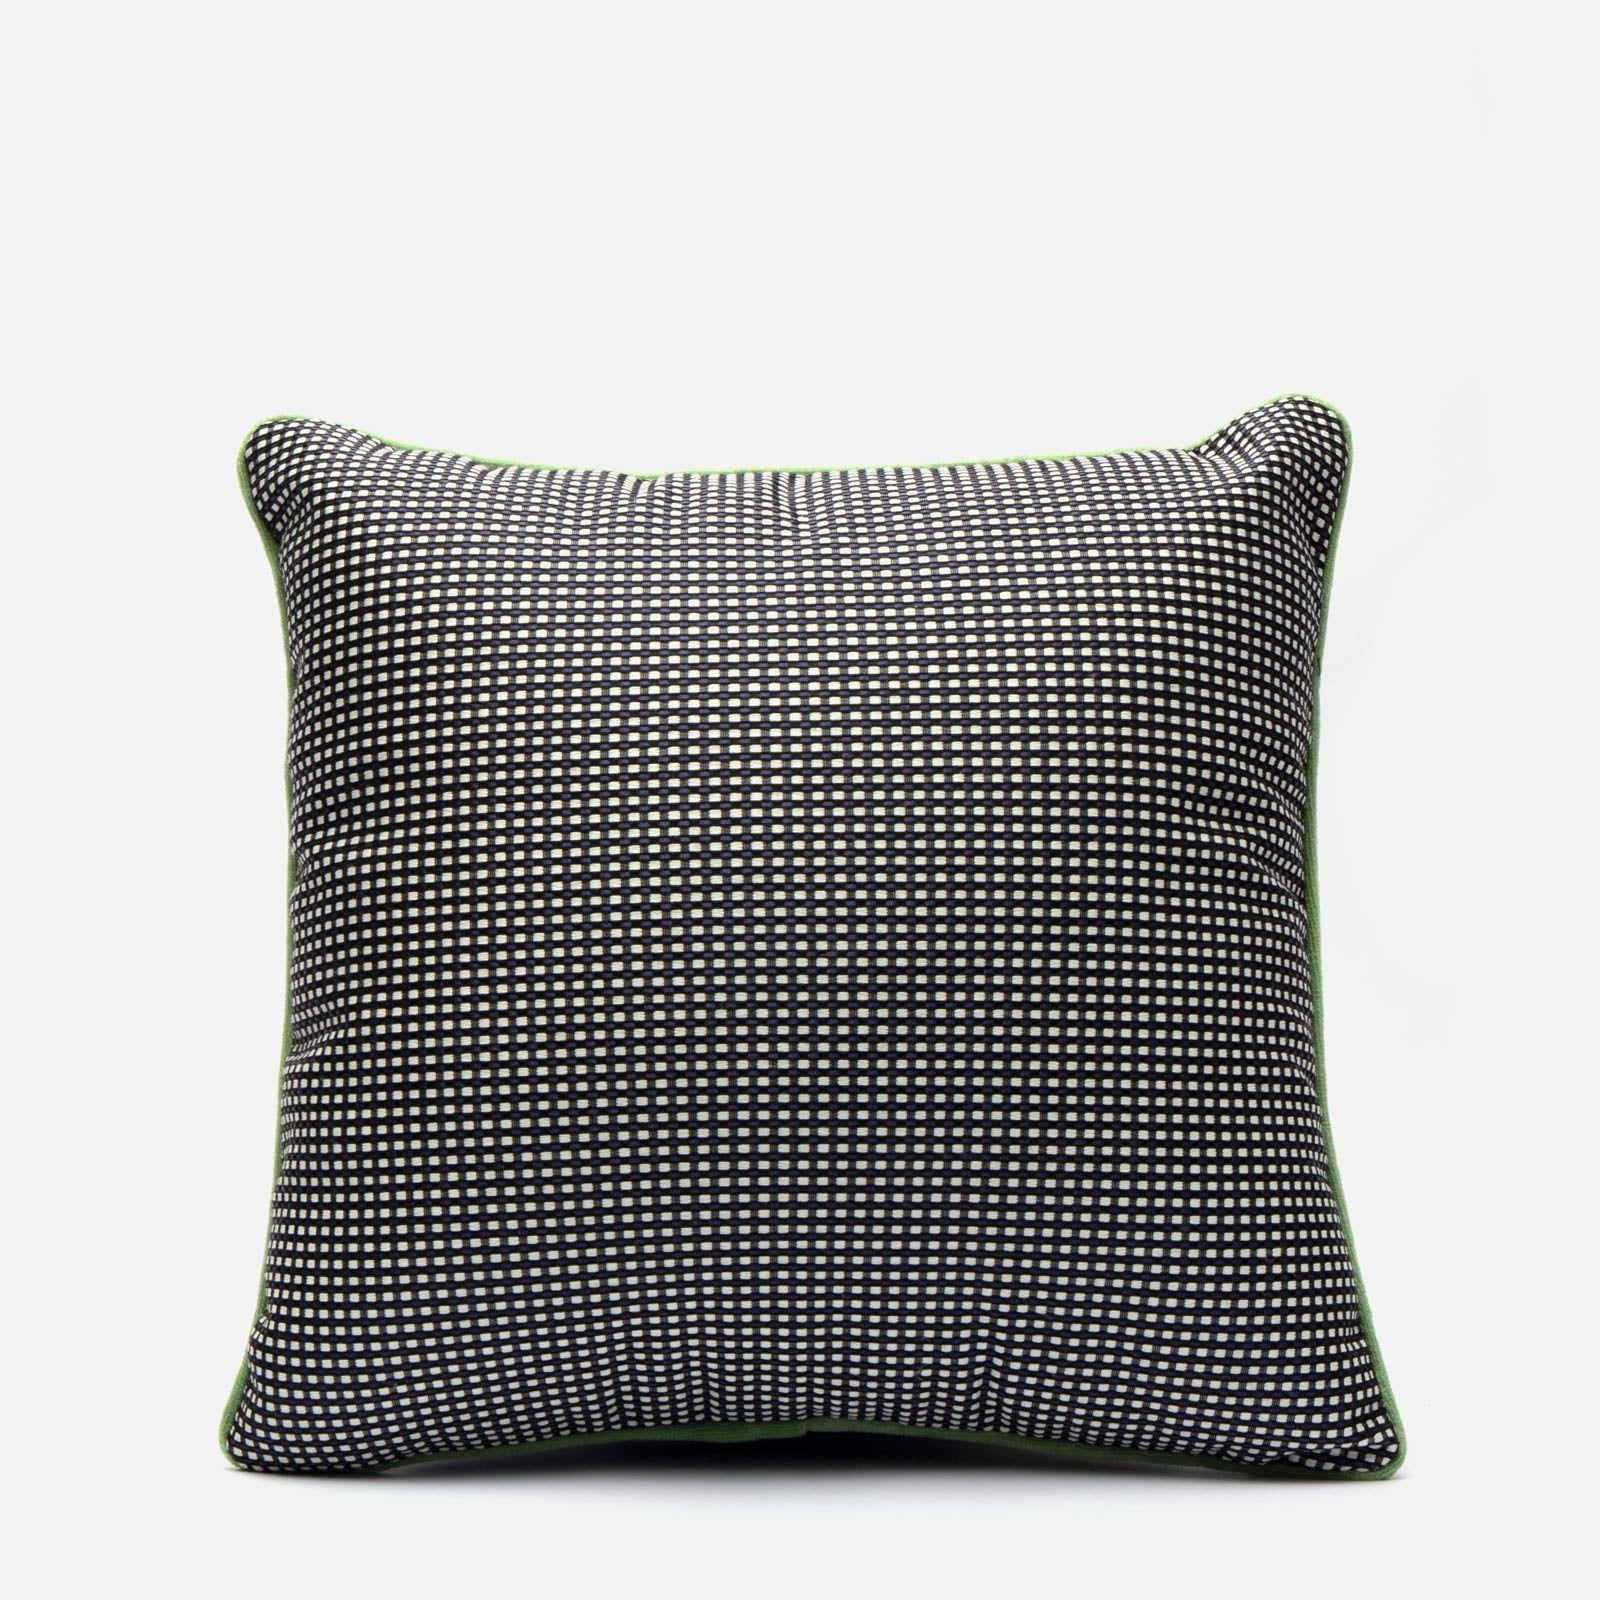 Dot Jacquard Throw Pillow Black White